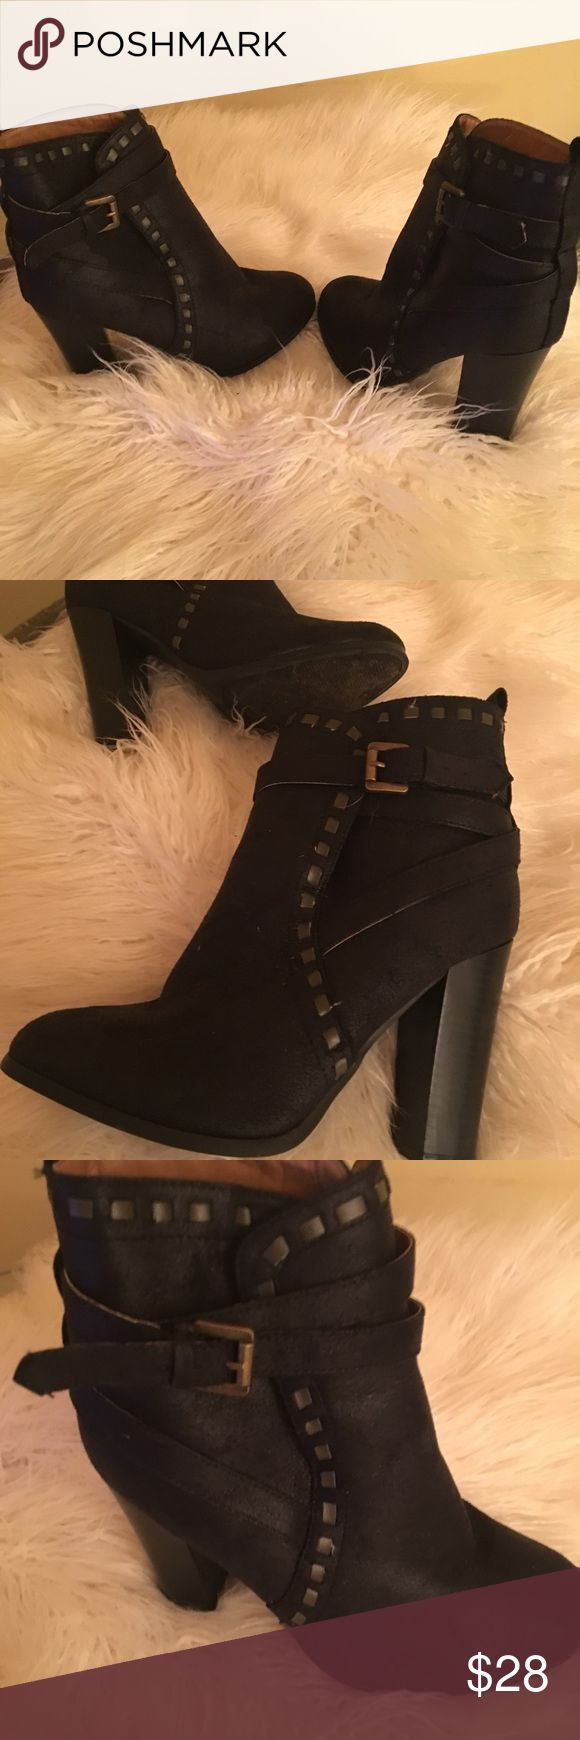 Booties Venus black faux suede booties. These are by far the most comfortable booties ever! I needed a pr to wear in New Orleans walking around and dancing all night, they were absolutely perfect! VENUS Shoes Ankle Boots & Booties